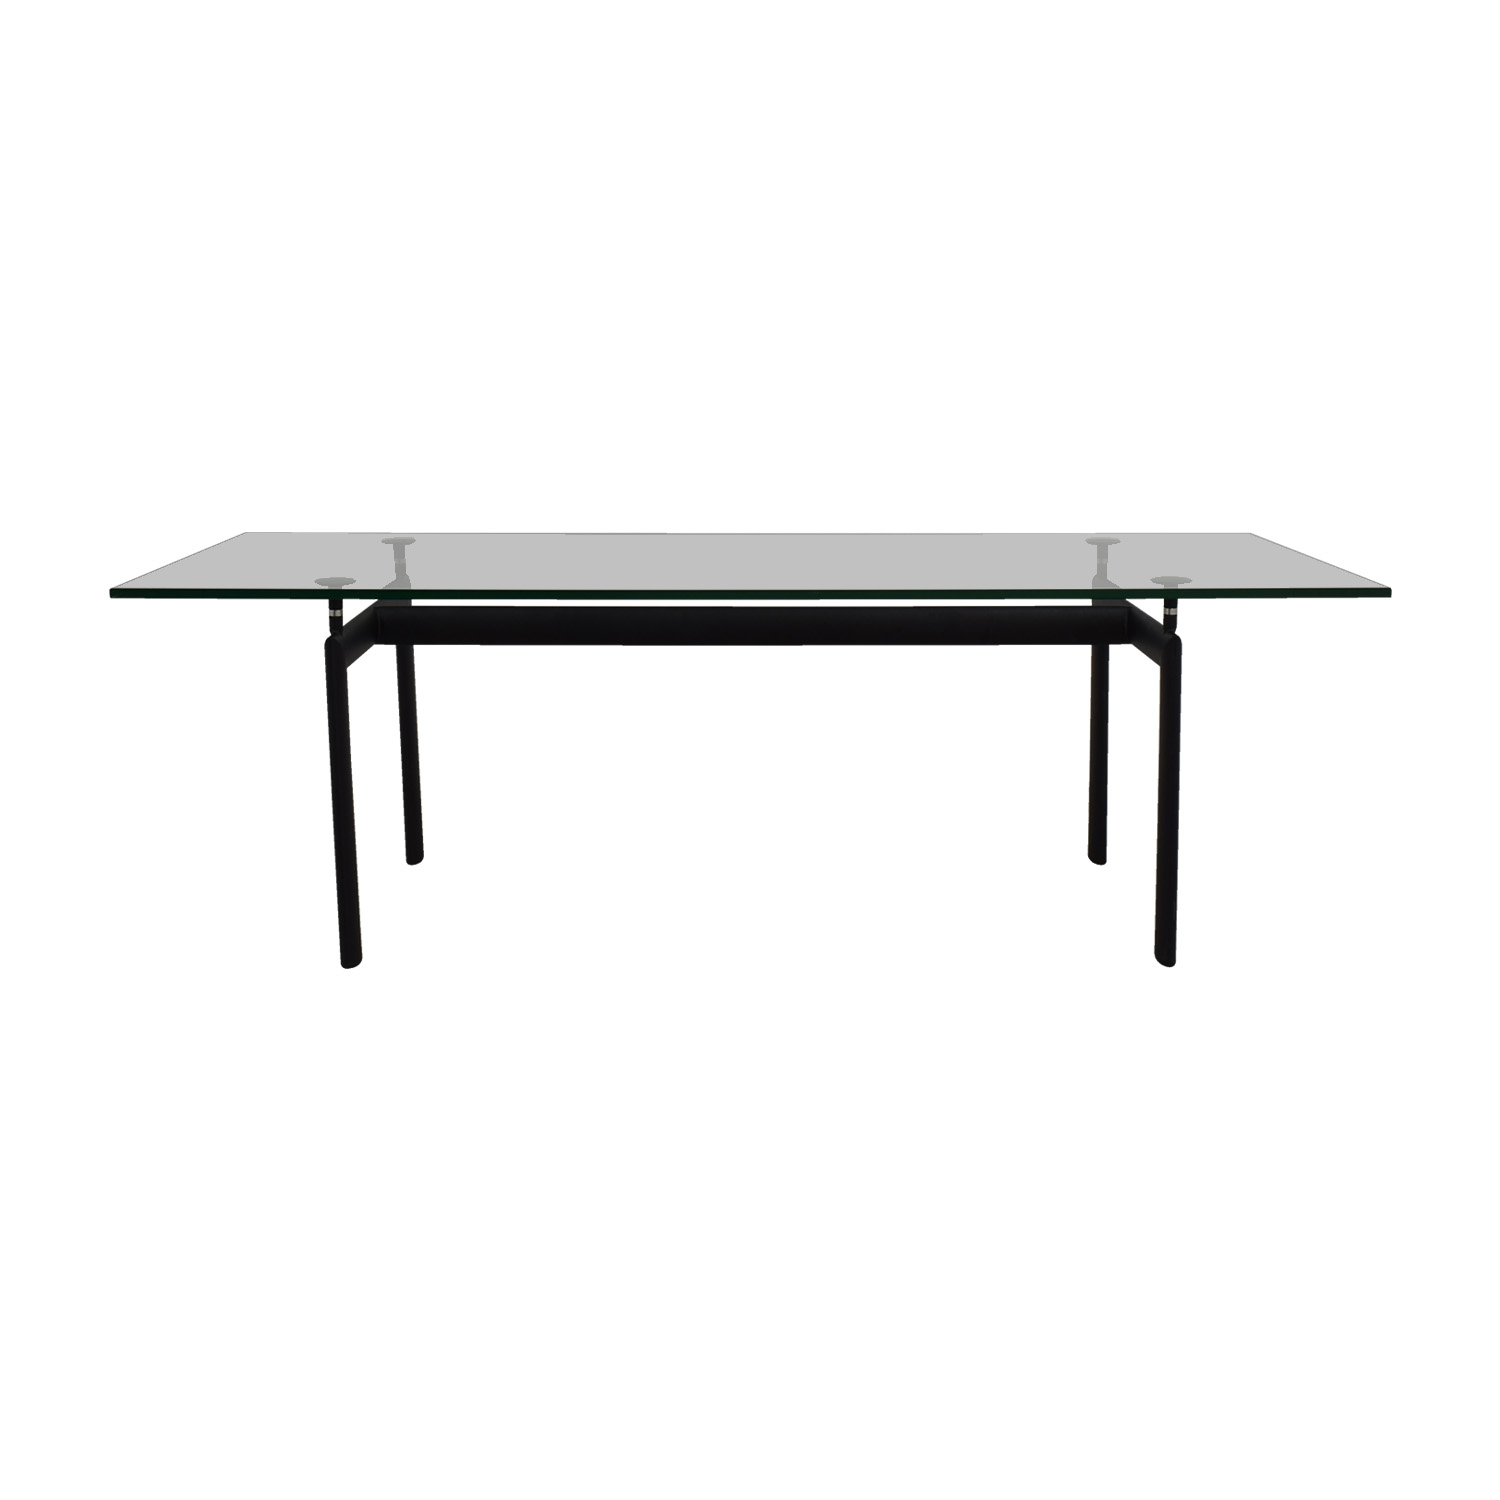 Kardiel Kardiel LC6 Black Base and Glass Top Dining Table price